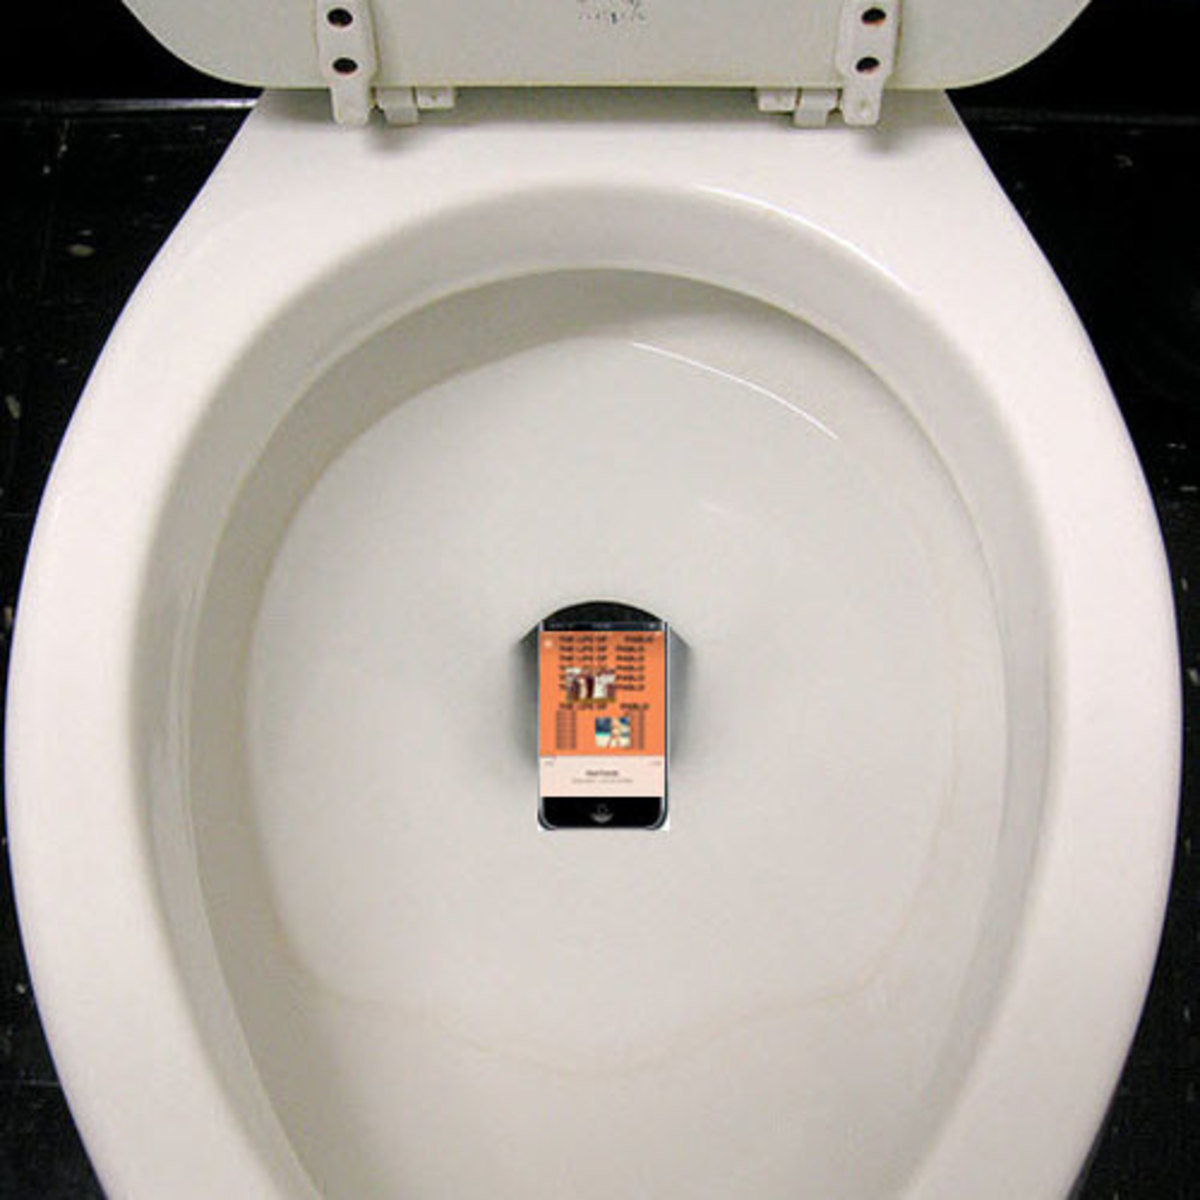 tlop-in-the-toilet.jpg